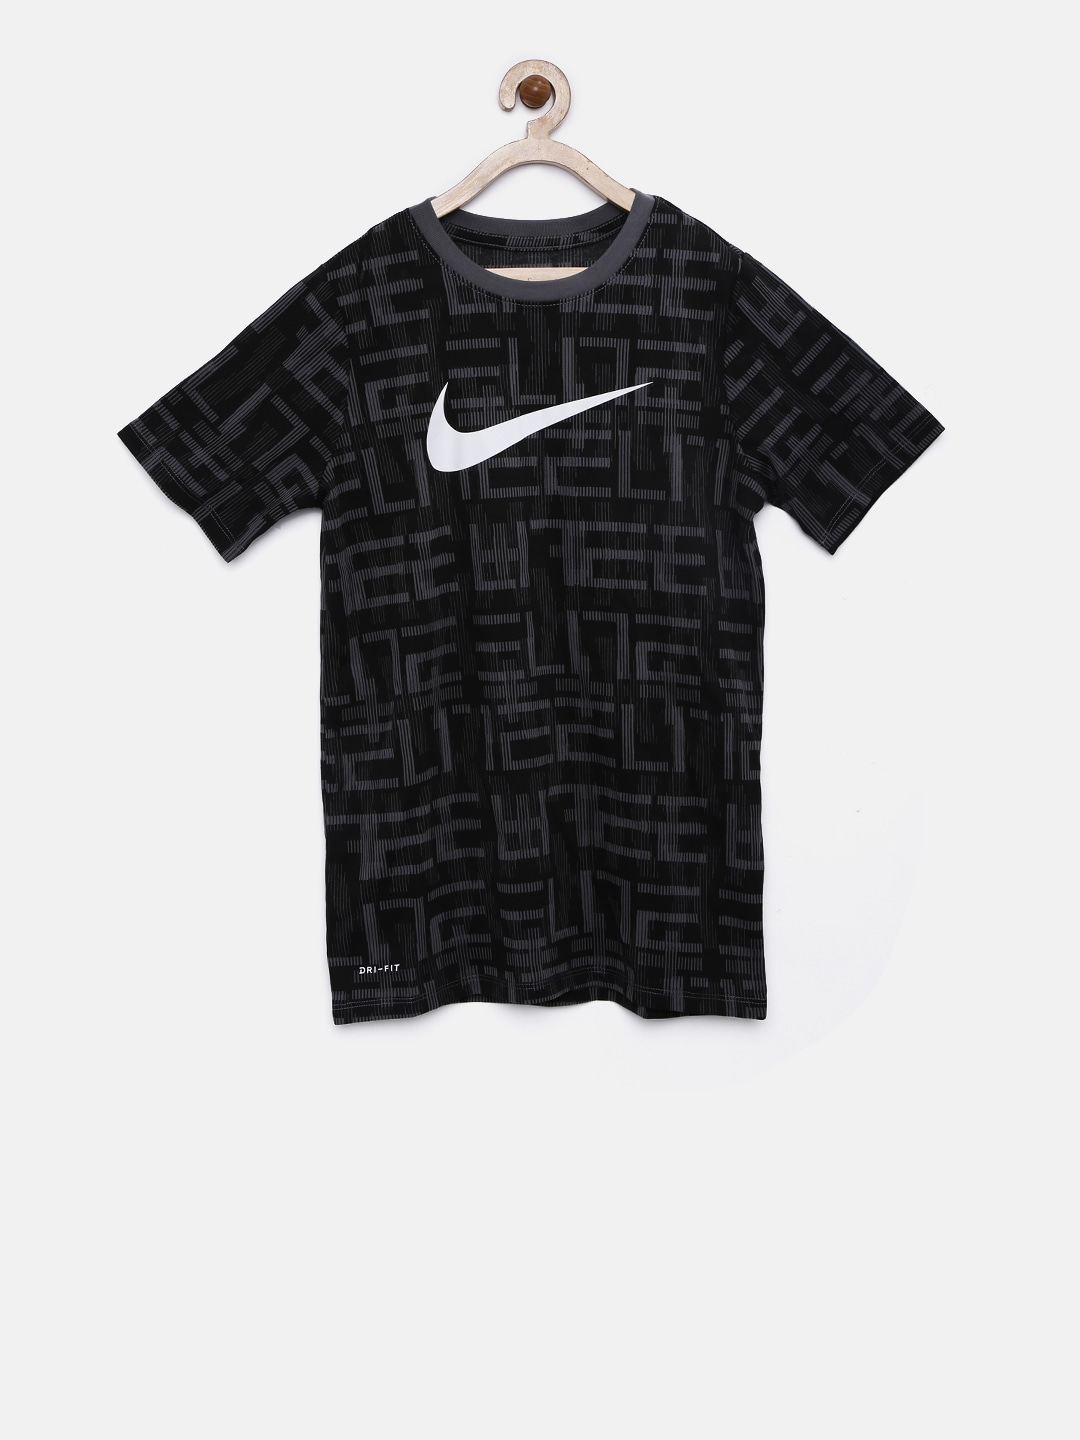 00a7875193d6 Nike Sports Shoes Shirts Polo Tshirts - Buy Nike Sports Shoes Shirts Polo Tshirts  online in India